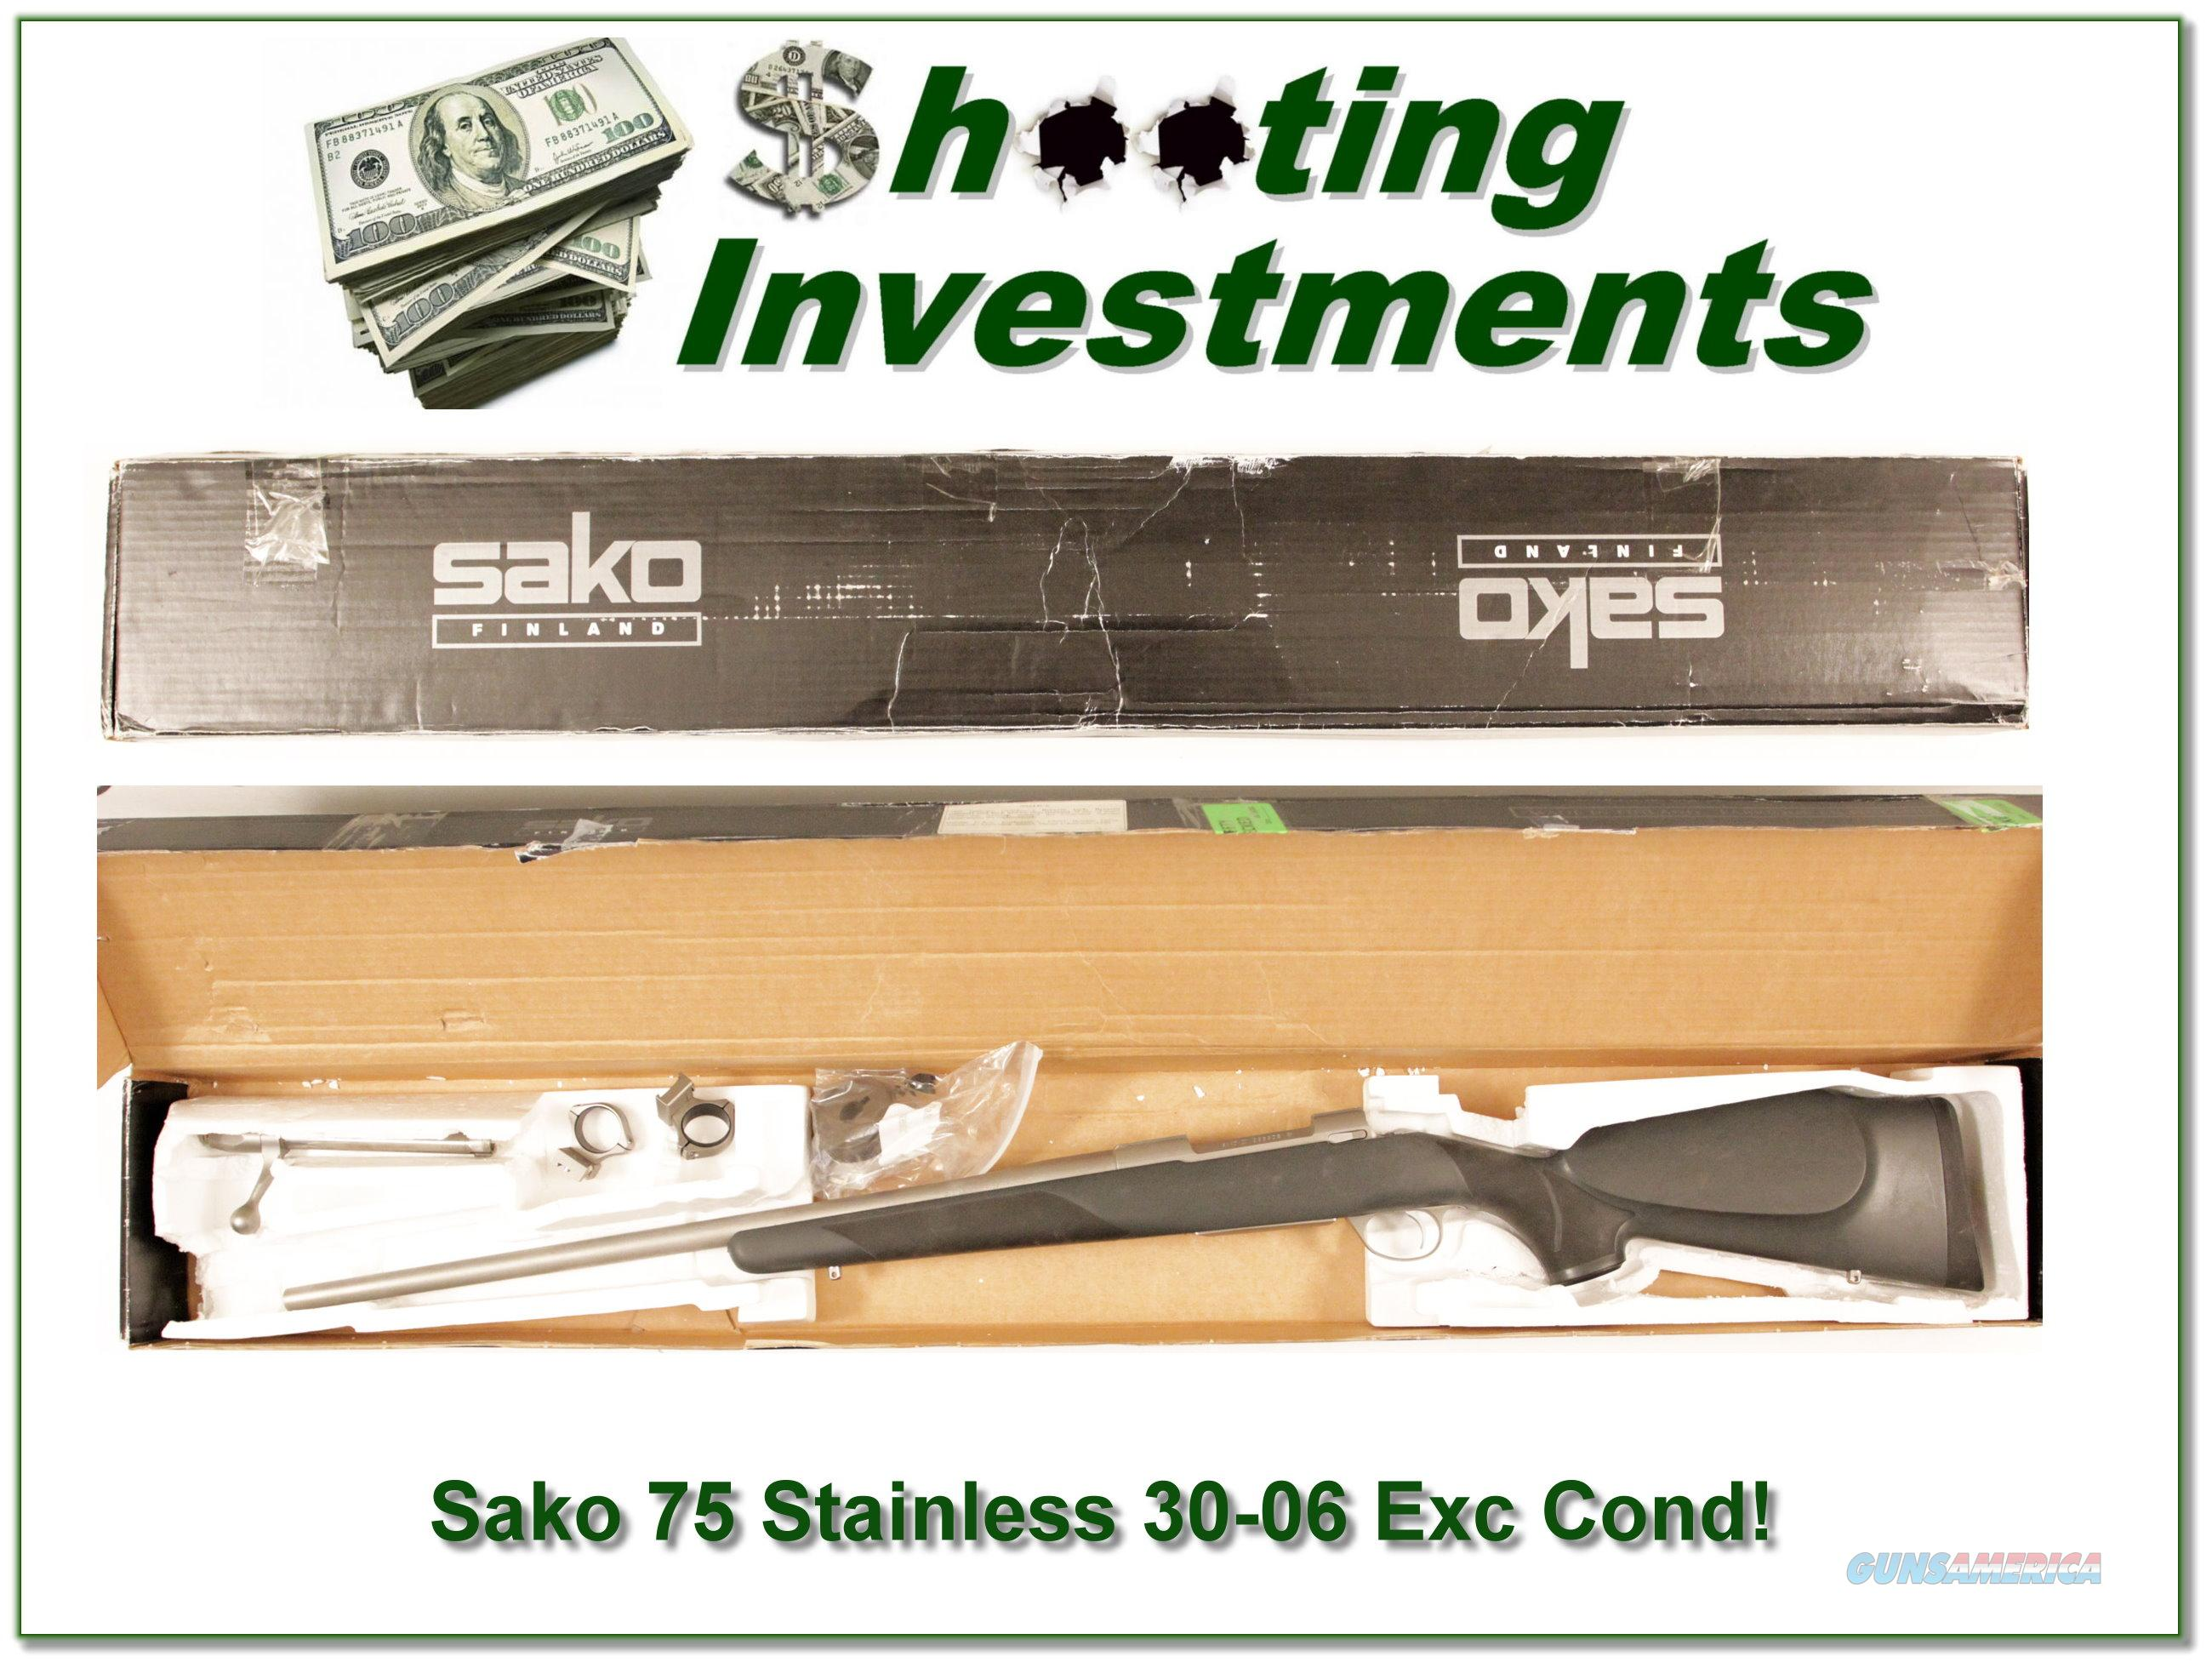 Sako 75 Stainless 30-06 Exc Cond  Guns > Rifles > Sako Rifles > M75 Series